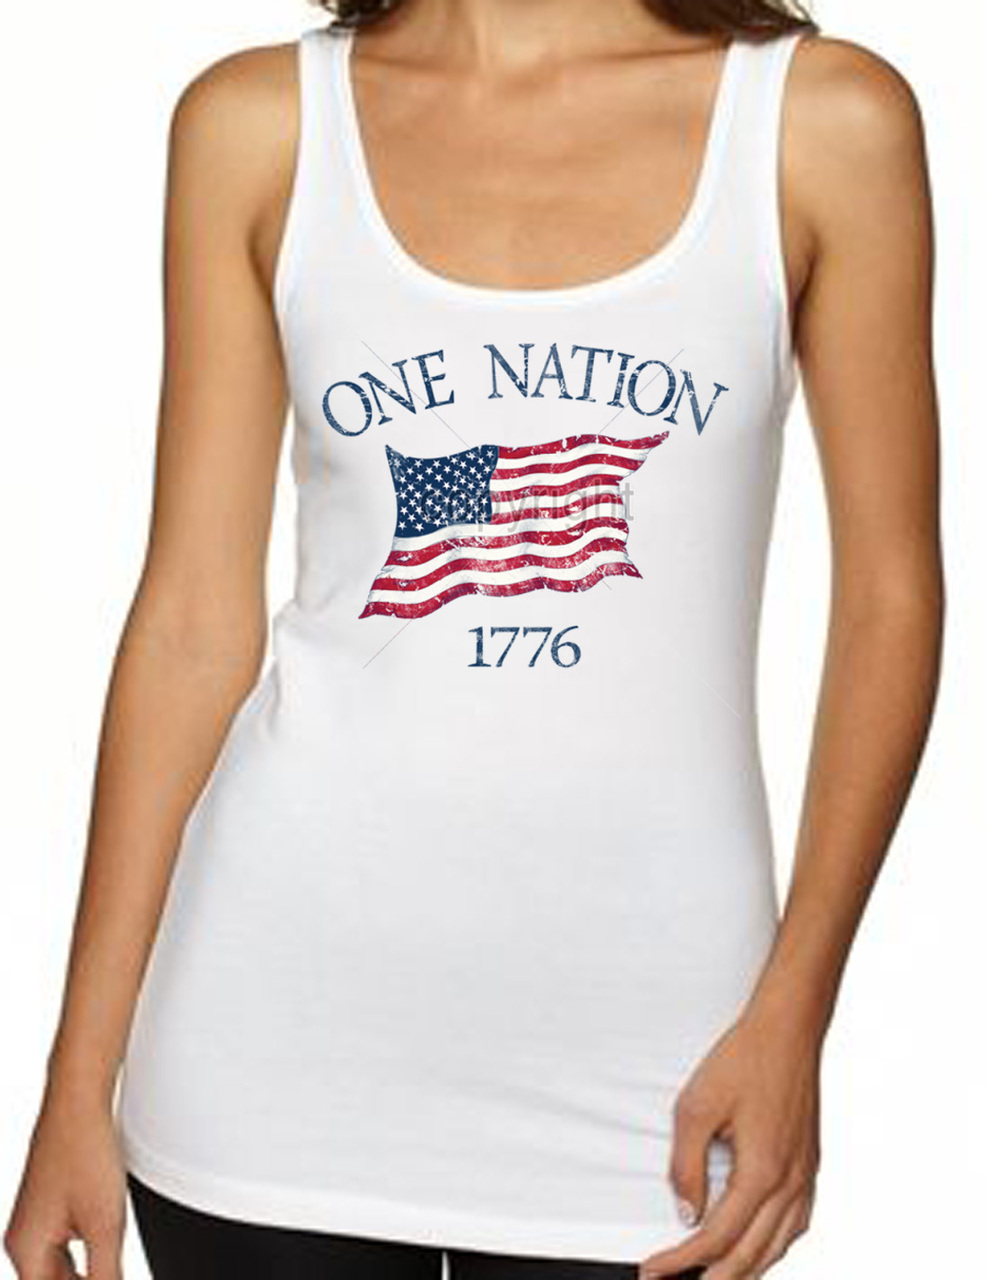 One Nation 1776 Women's Tank Top